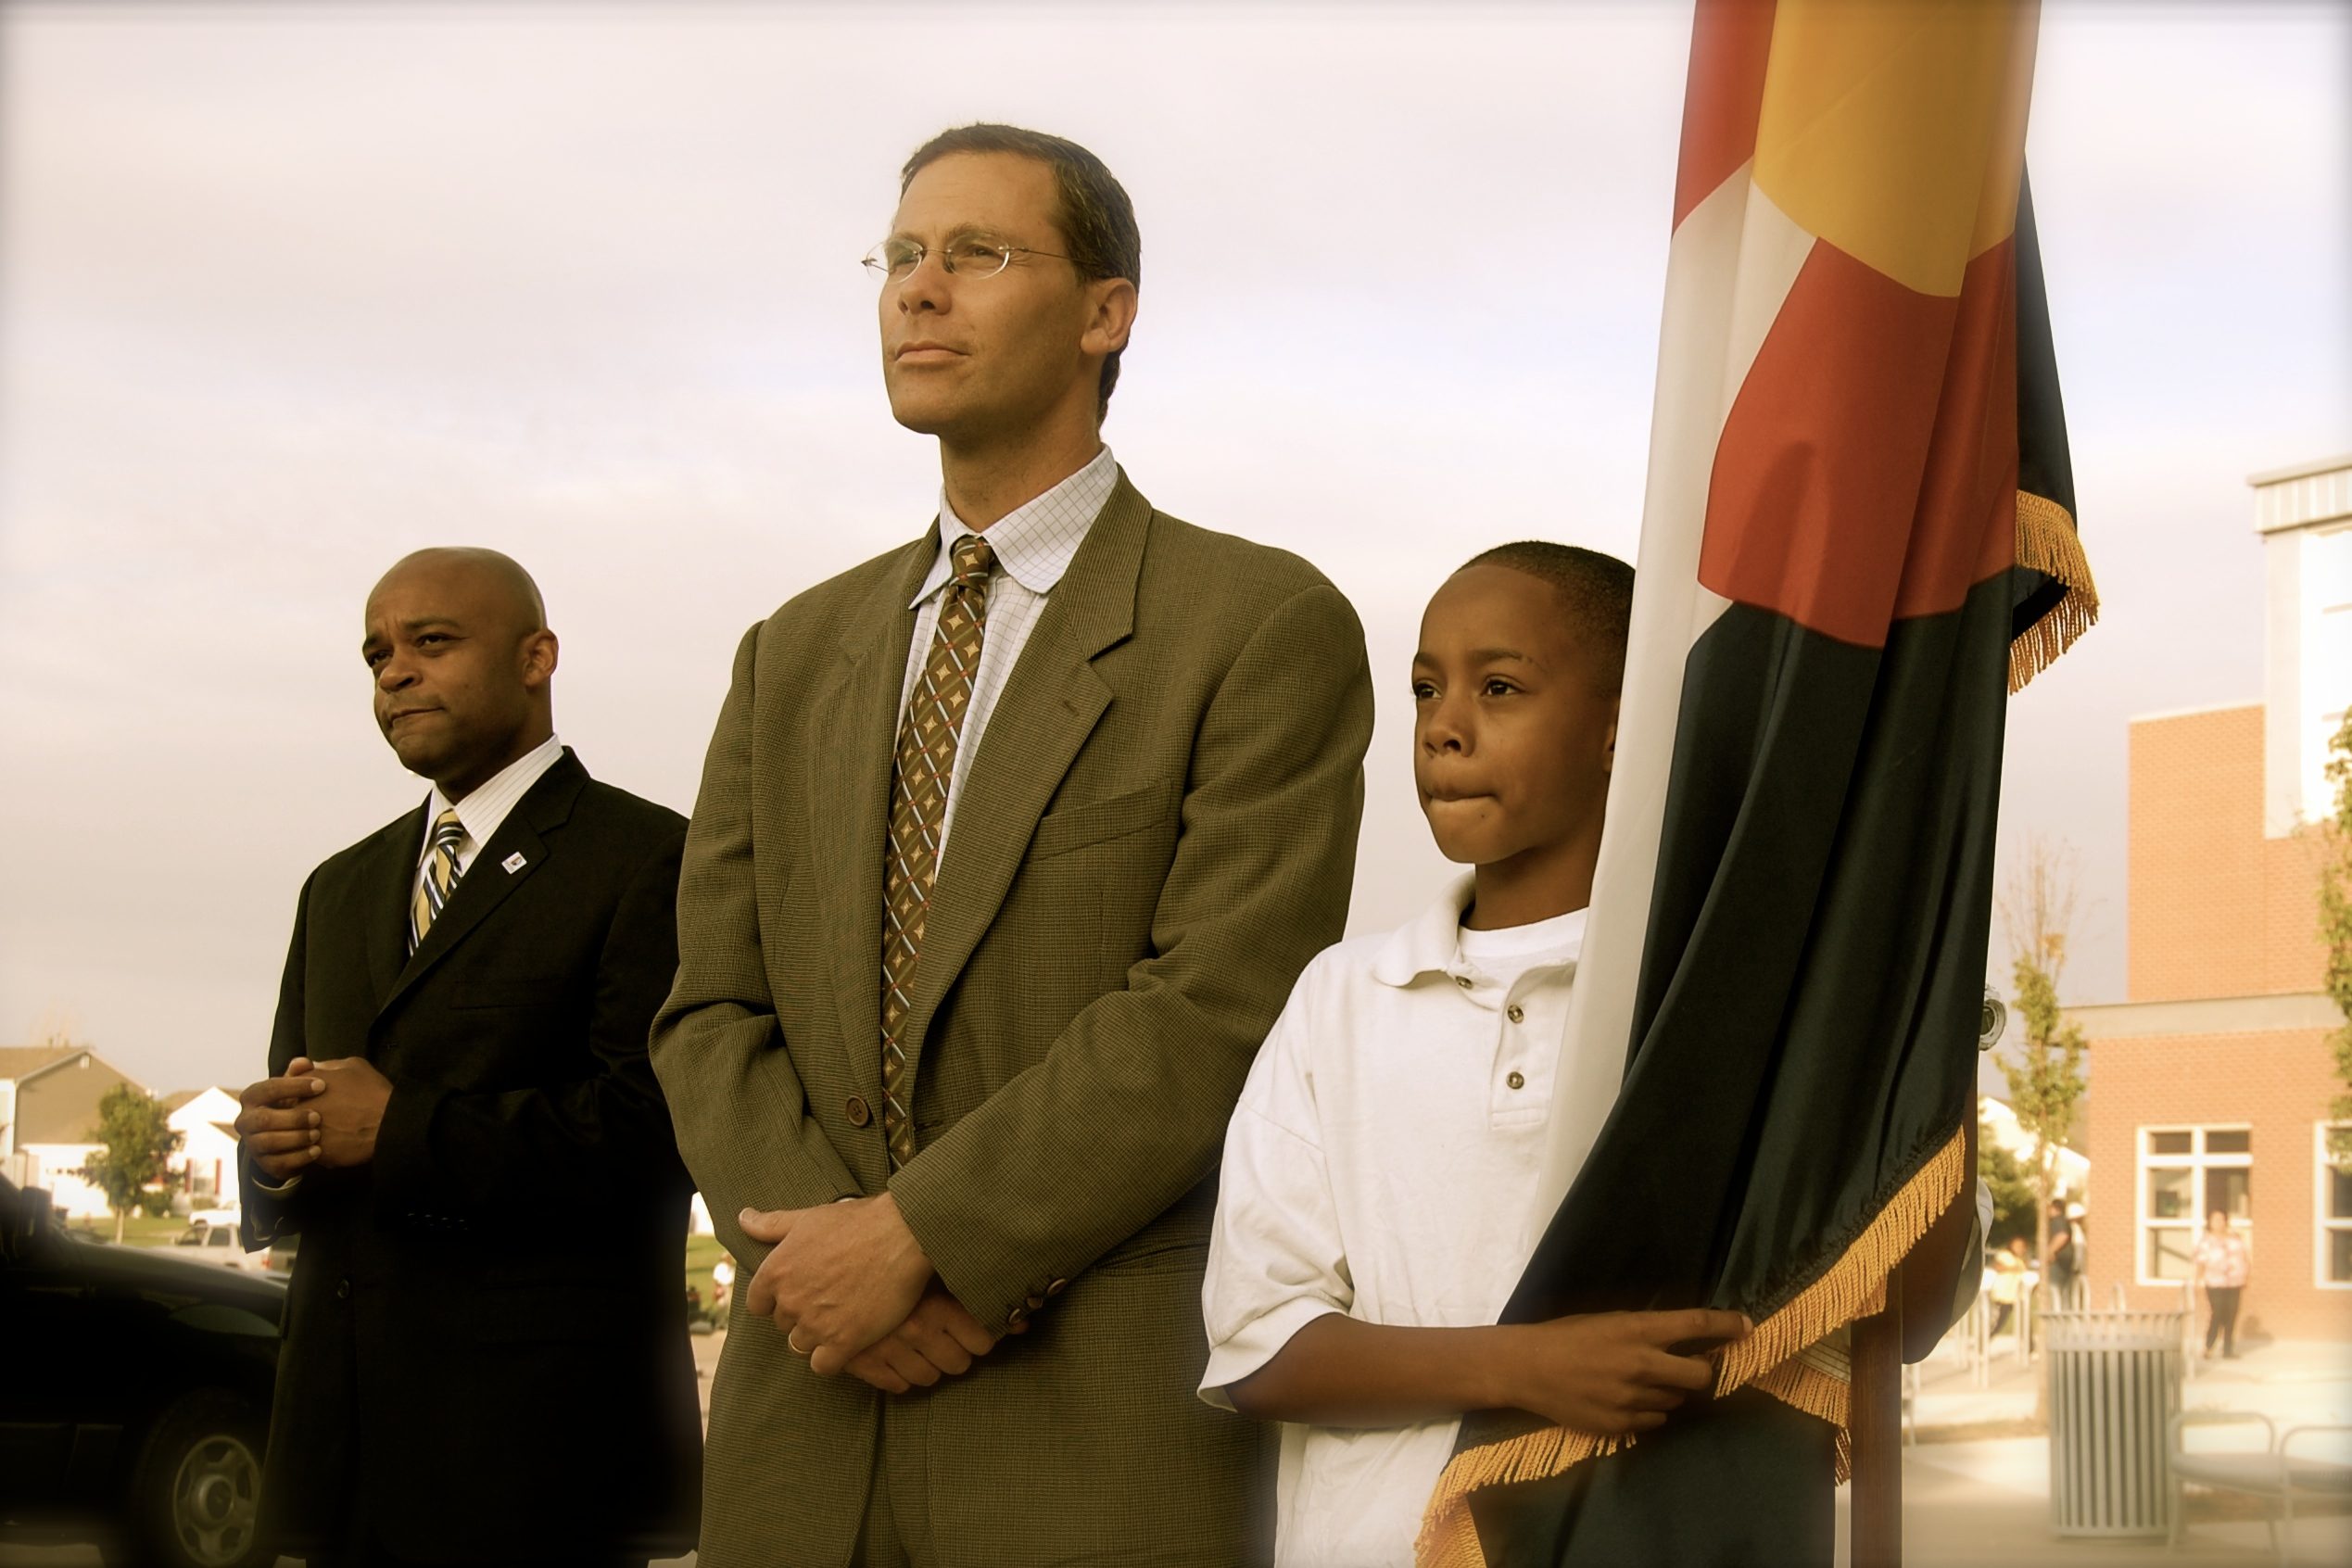 Denver Public Schools Superintendent Tom Boasberg, center, with Denver Mayor Michael Hancock and a DPS student on the opening day of school in 2011.